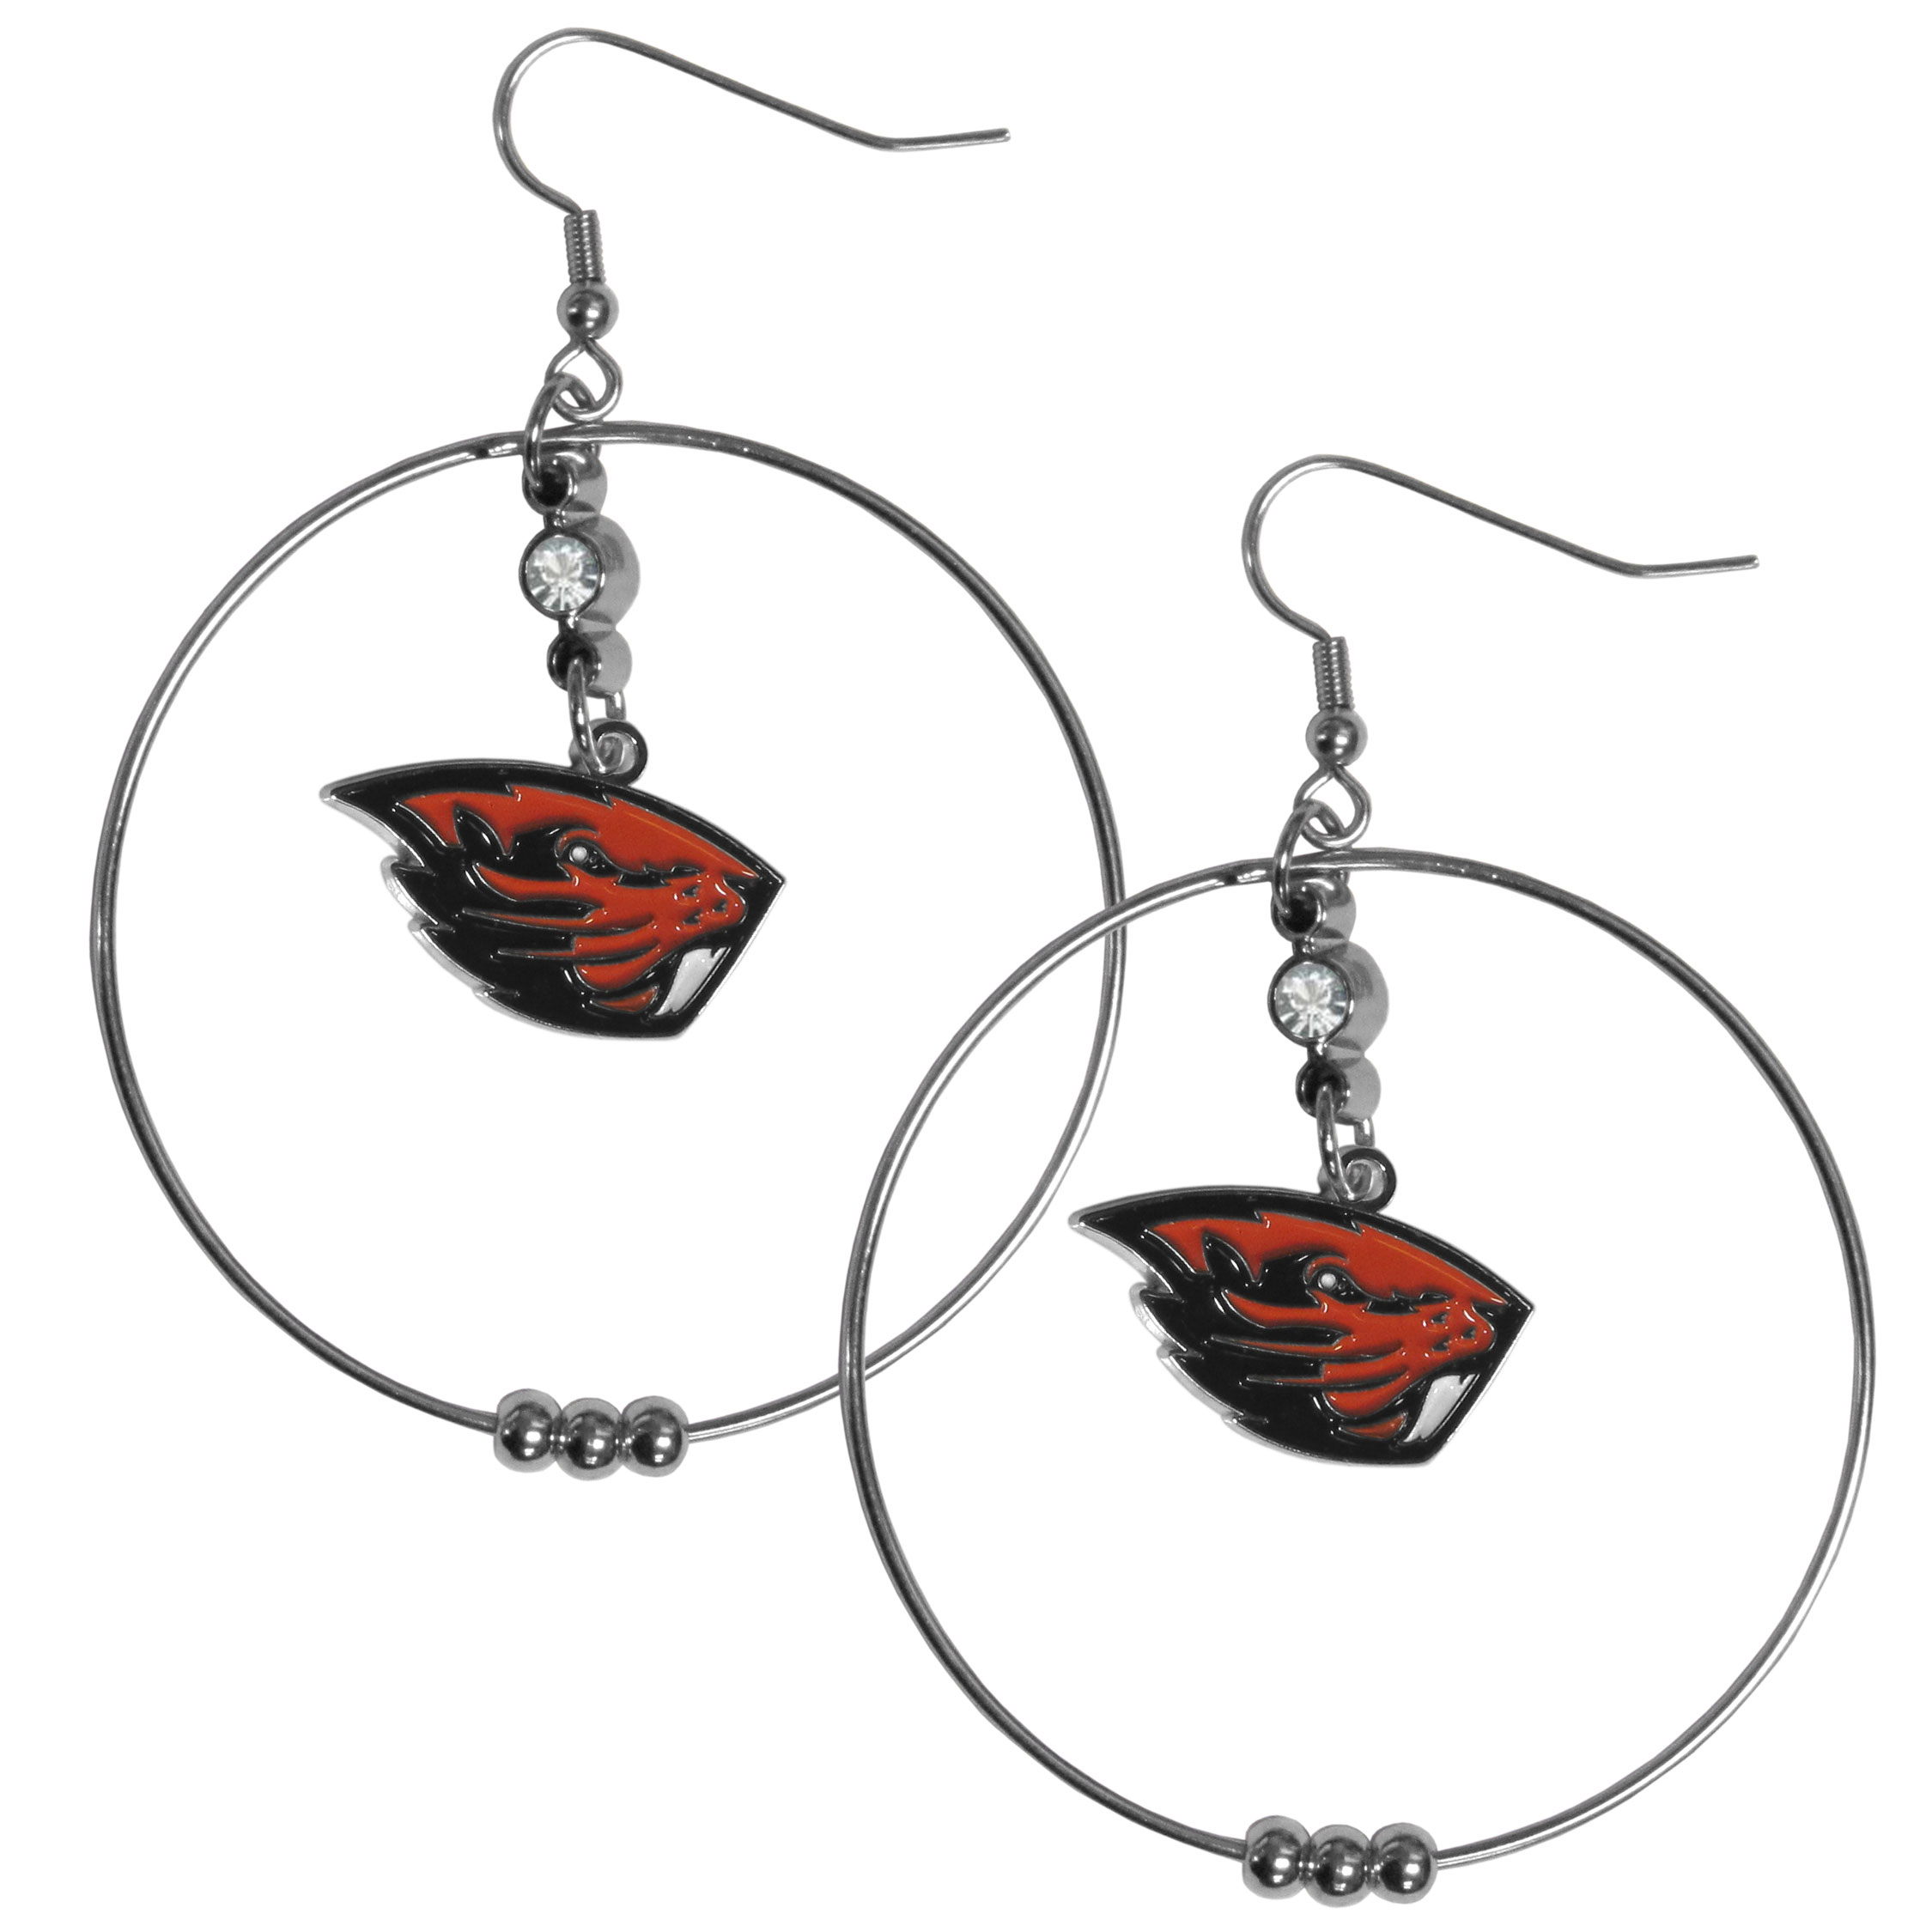 Oregon St. Beavers 2 Inch Hoop Earrings - Our large hoop earrings have a fully cast and enameled Oregon St. Beavers charm with enameled detail and a high polish nickel free chrome finish and rhinestone access. Hypoallergenic fishhook posts.